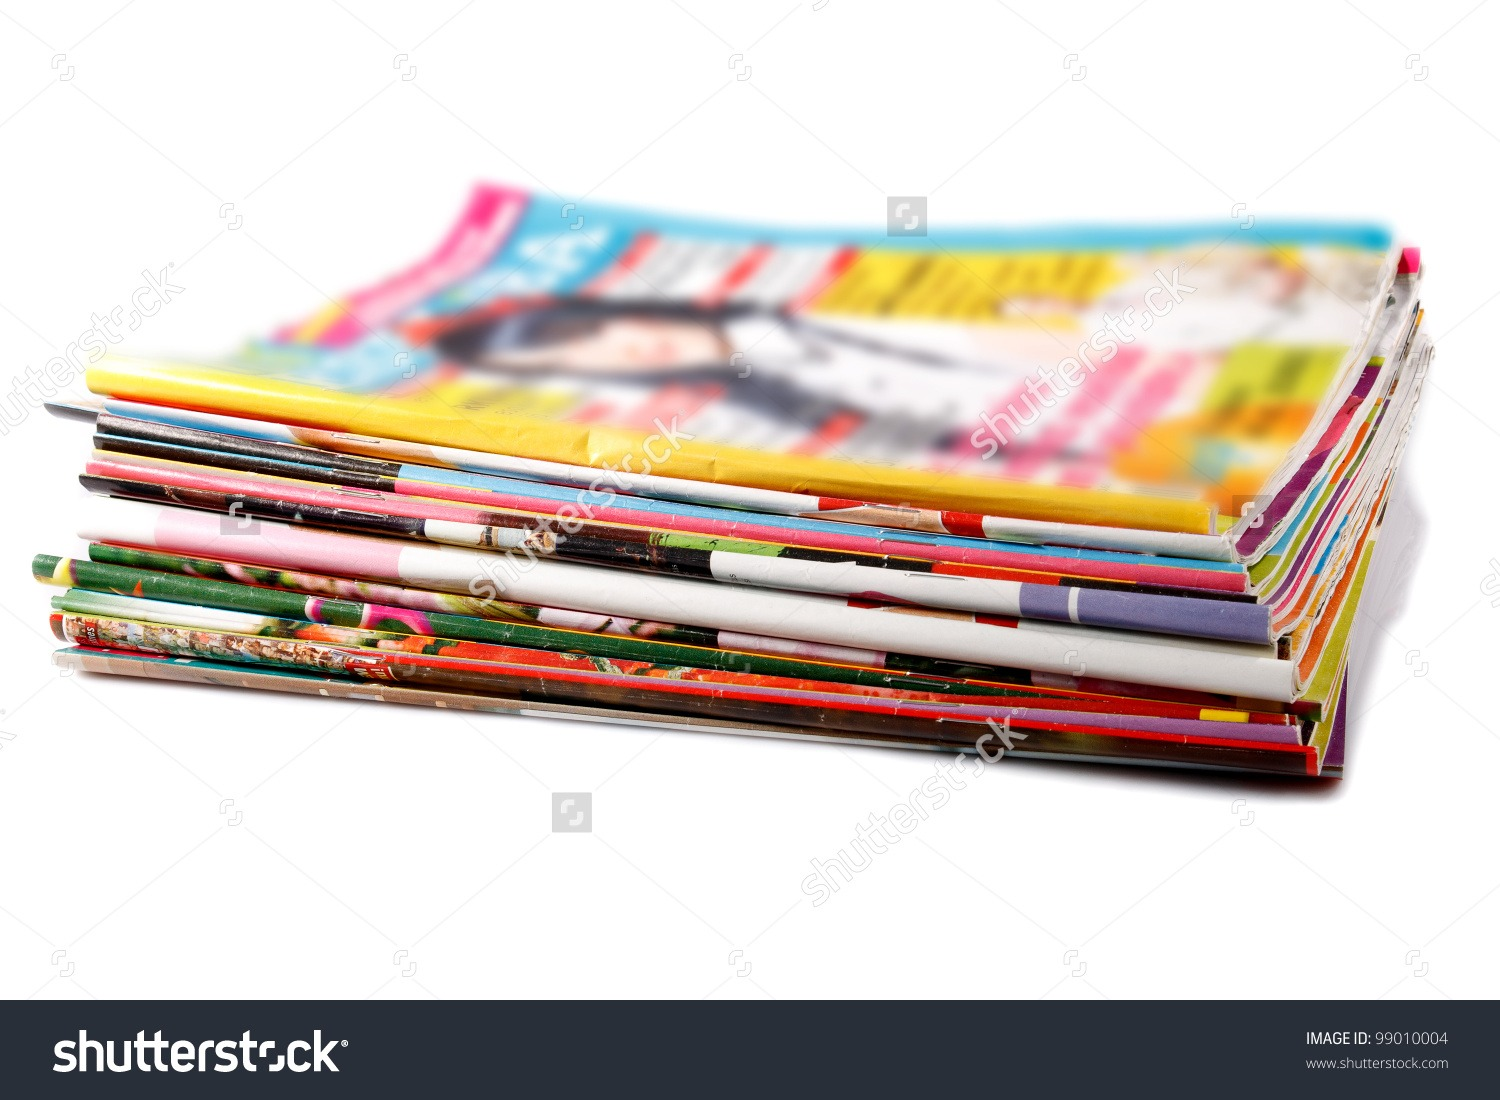 Magazine clipart pile. Stack letters format of